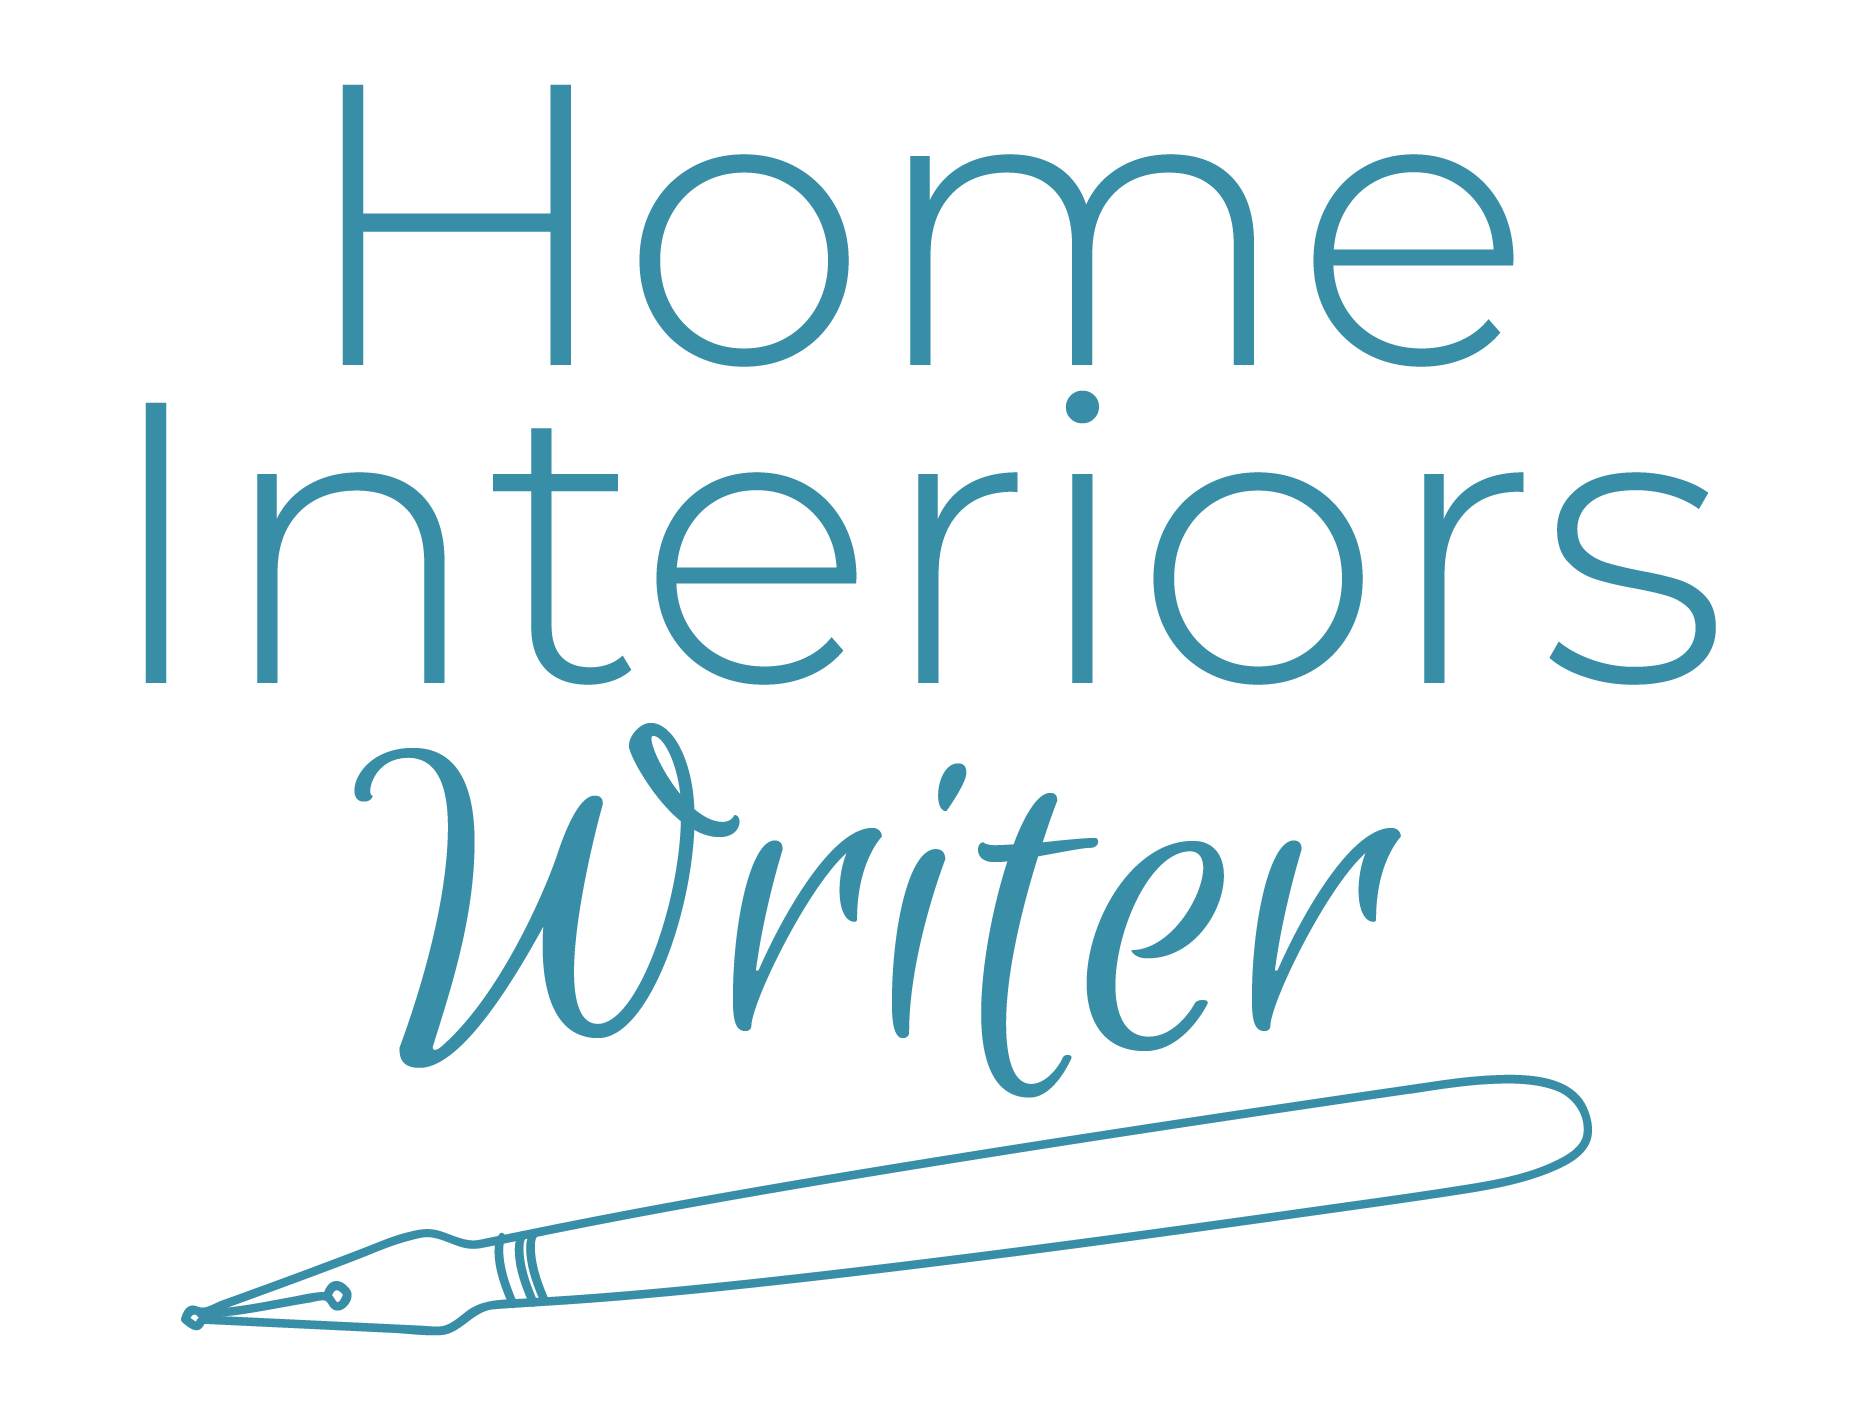 Home Interiors Writer